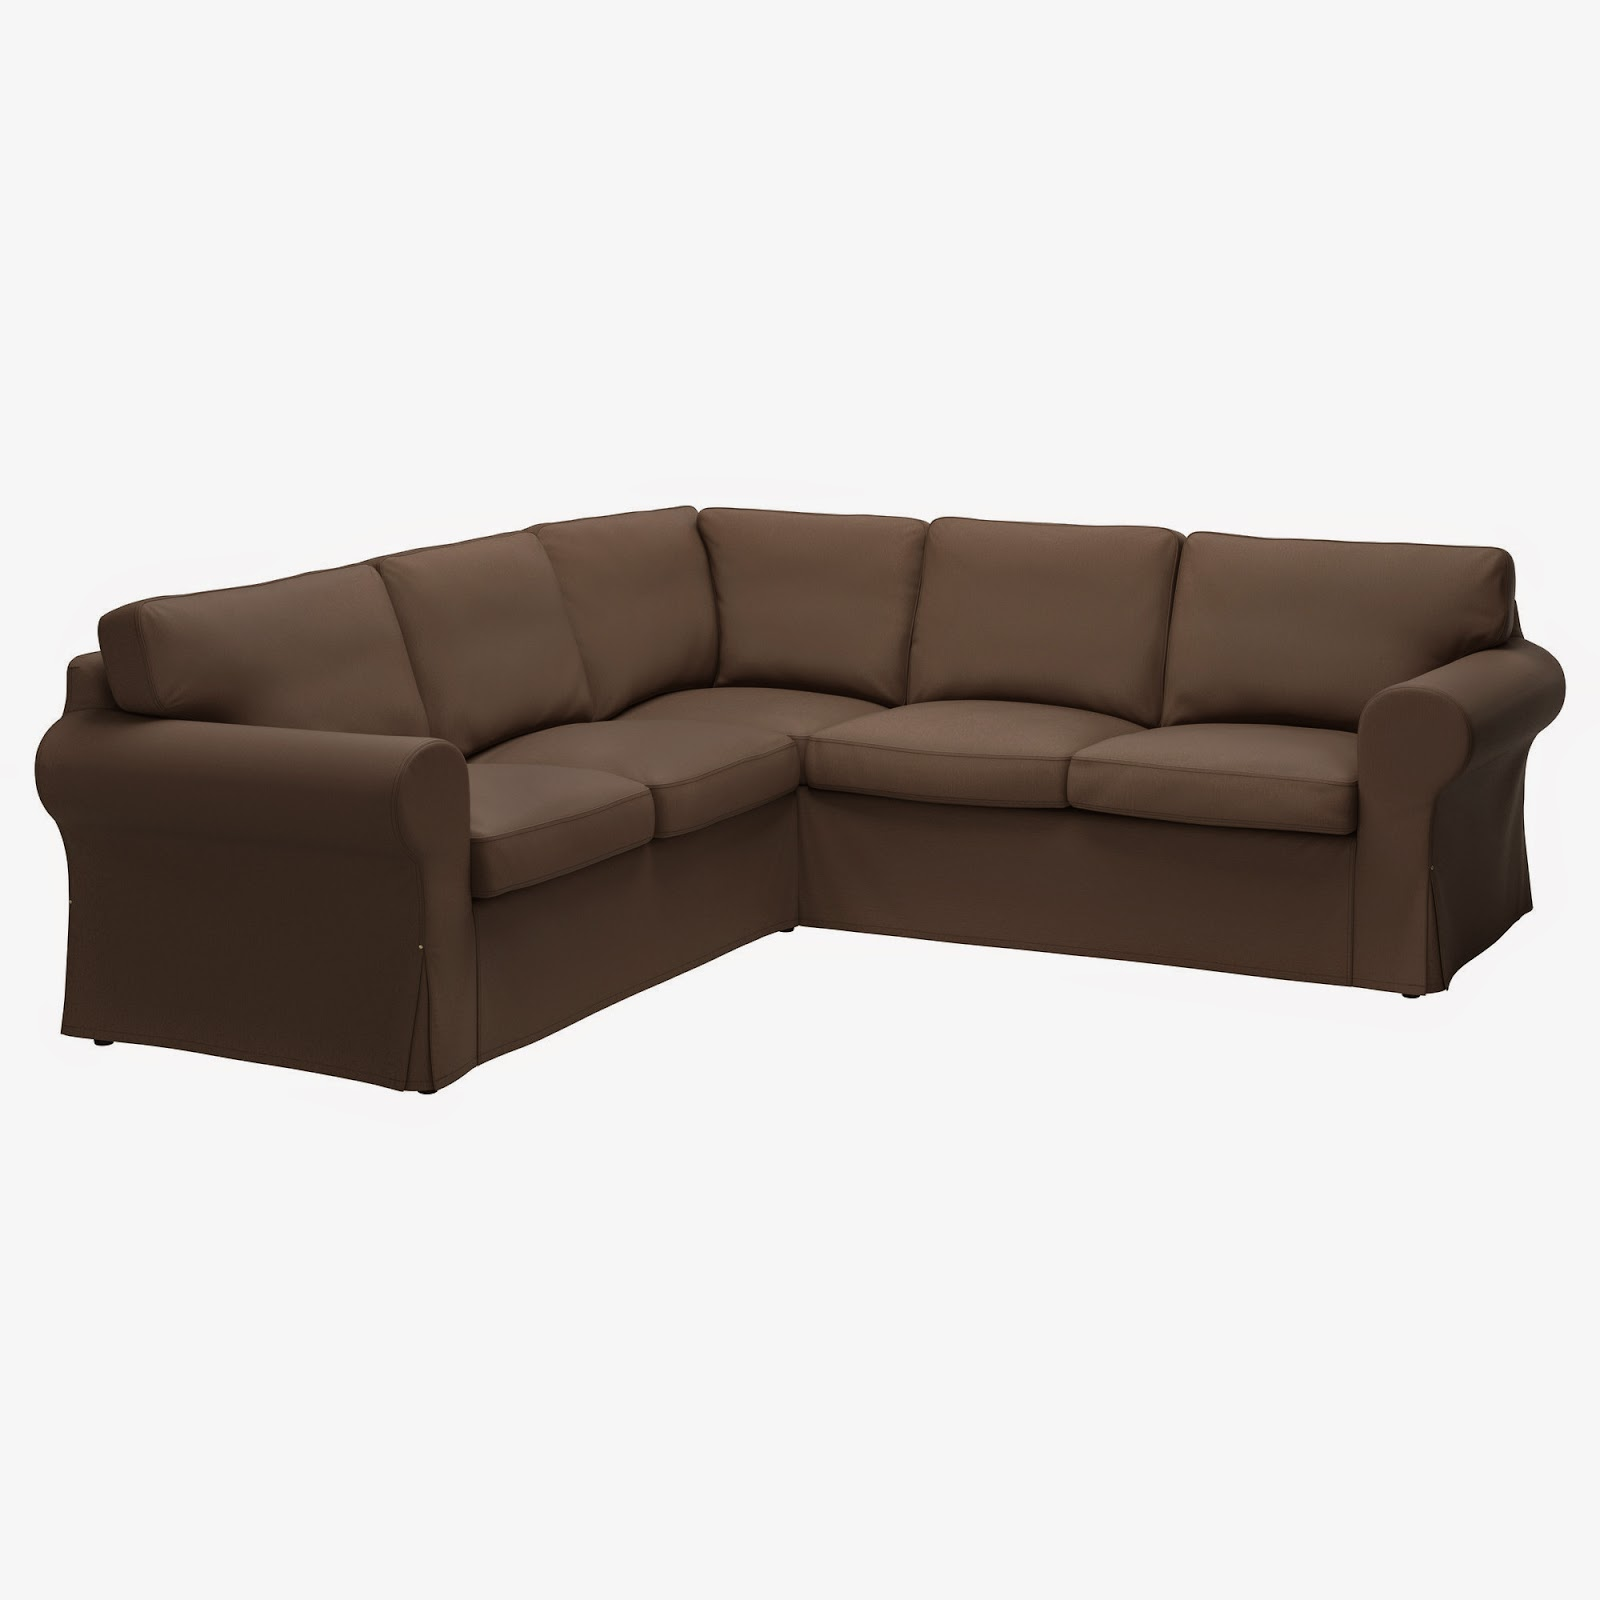 Sofa Ideas IKEA Set